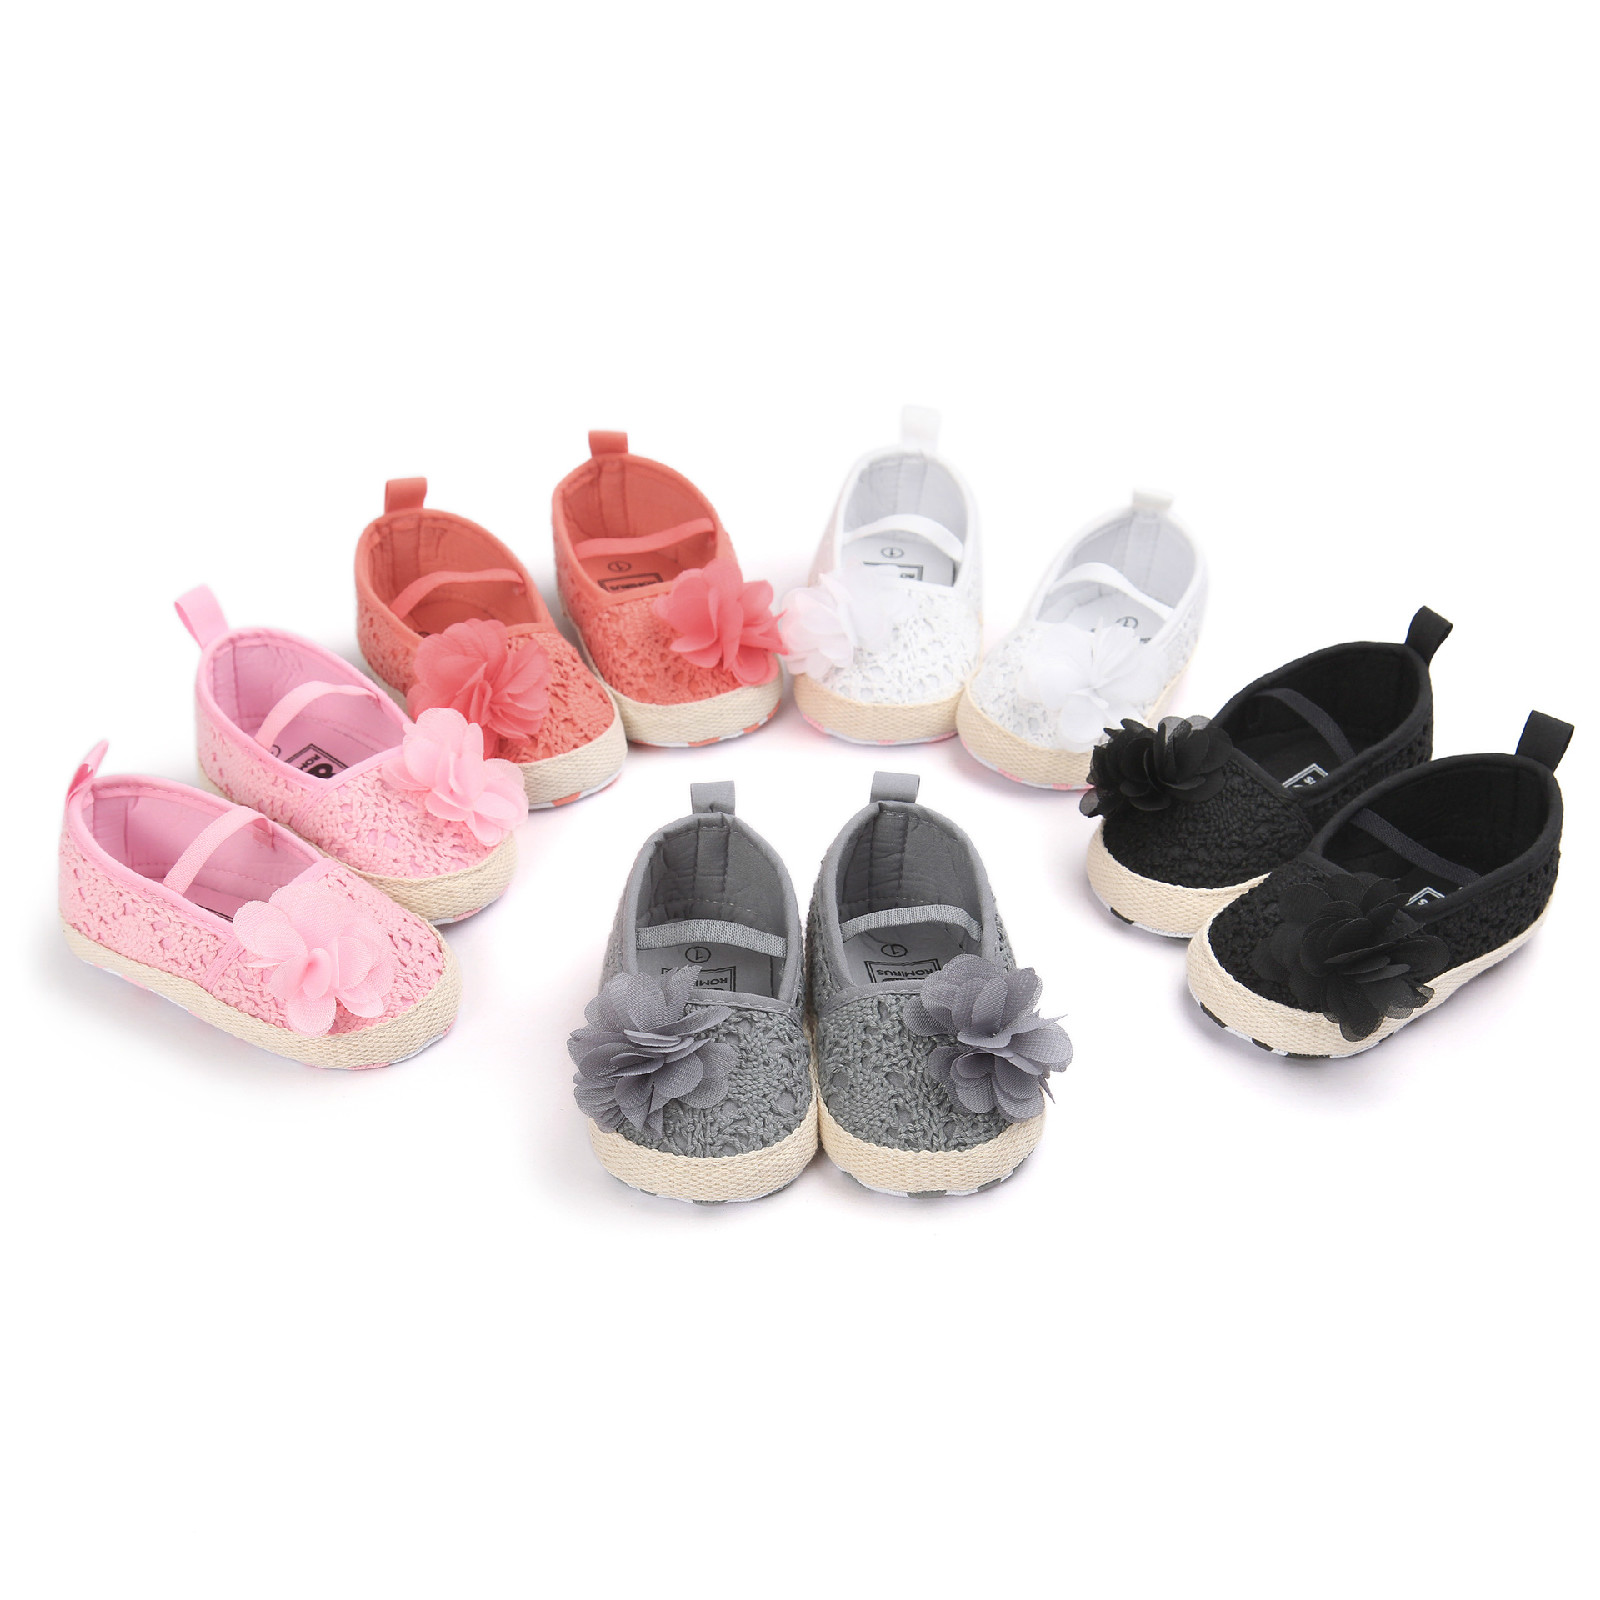 Princess Baby girls crochet shoes toddler infant girl shoes newborn shoes prewalker first walker chaussure bebes candy color